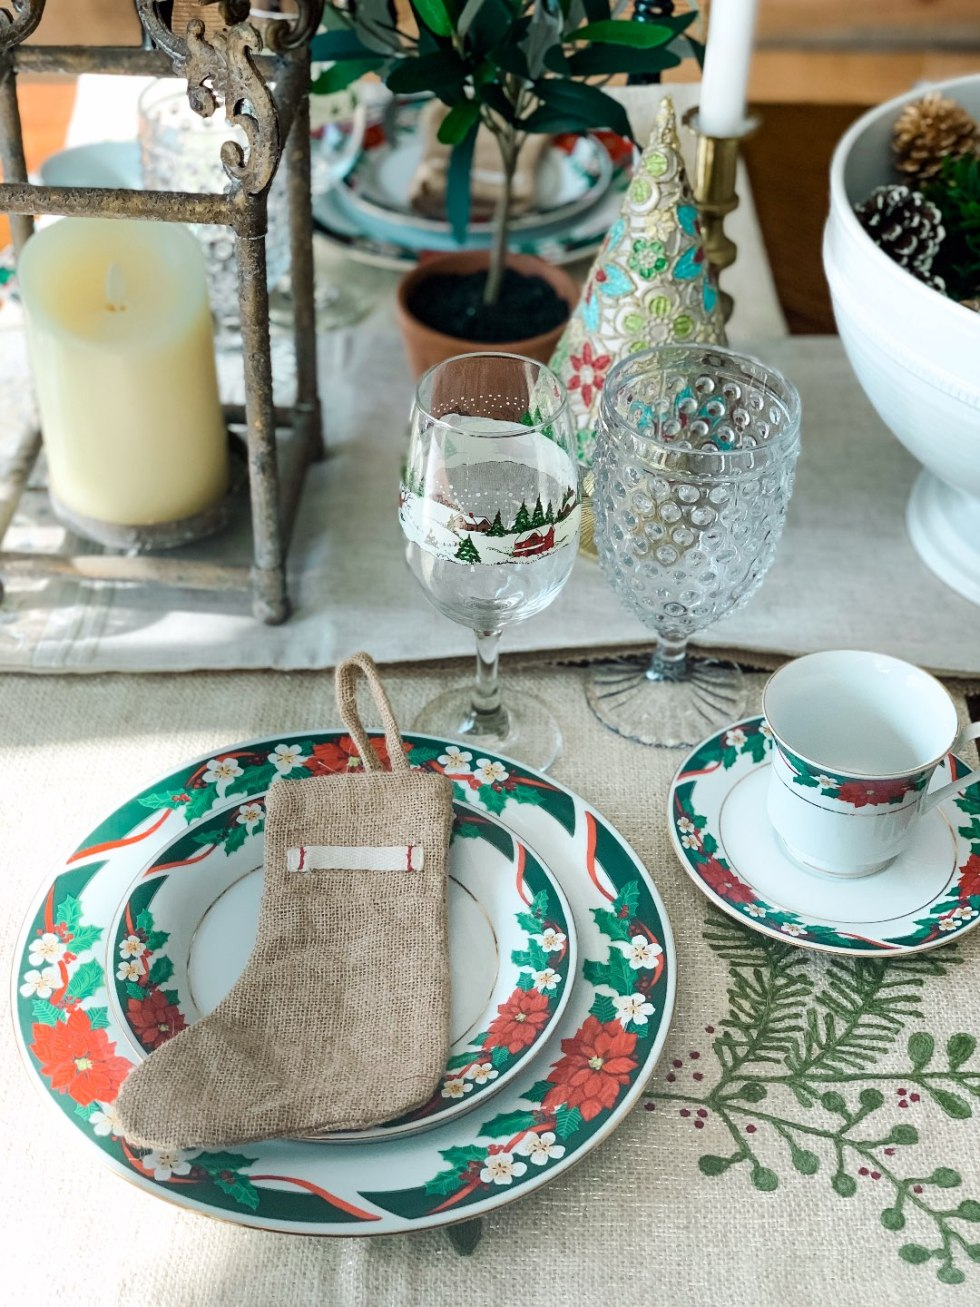 Holiday Home Decor Tour - I'm Fixin' To - @mbg0112 | Holiday Home Decor Tour by popular North Carolina life and style blog, I'm Fixin' To: image of a table set with Christmas dishes.